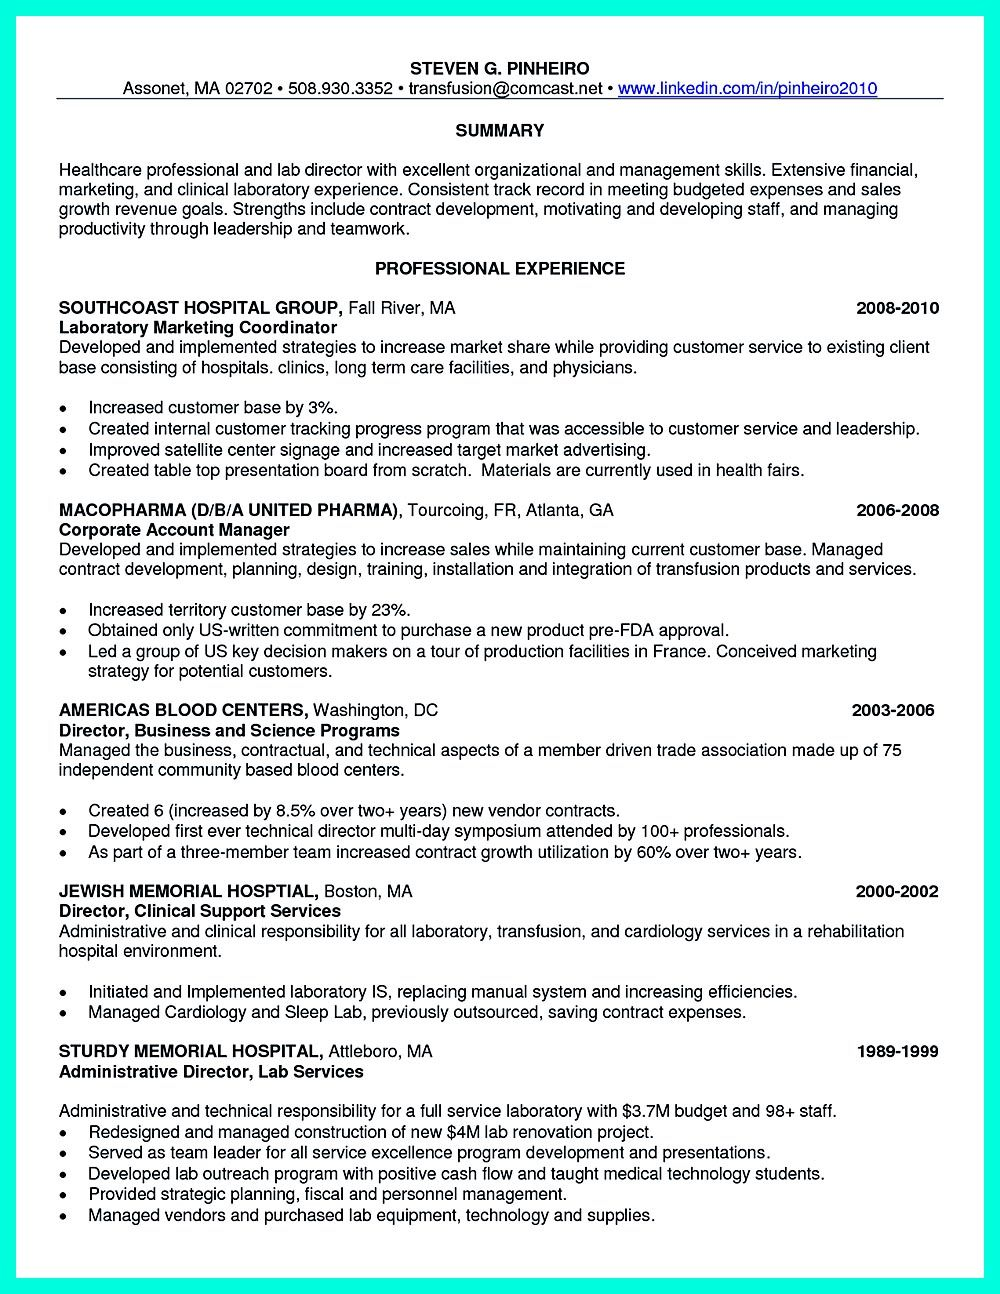 Clinical Research Coordinator Resume Objectives That Are Effective Job Resume Samples Clinical Research Project Manager Resume